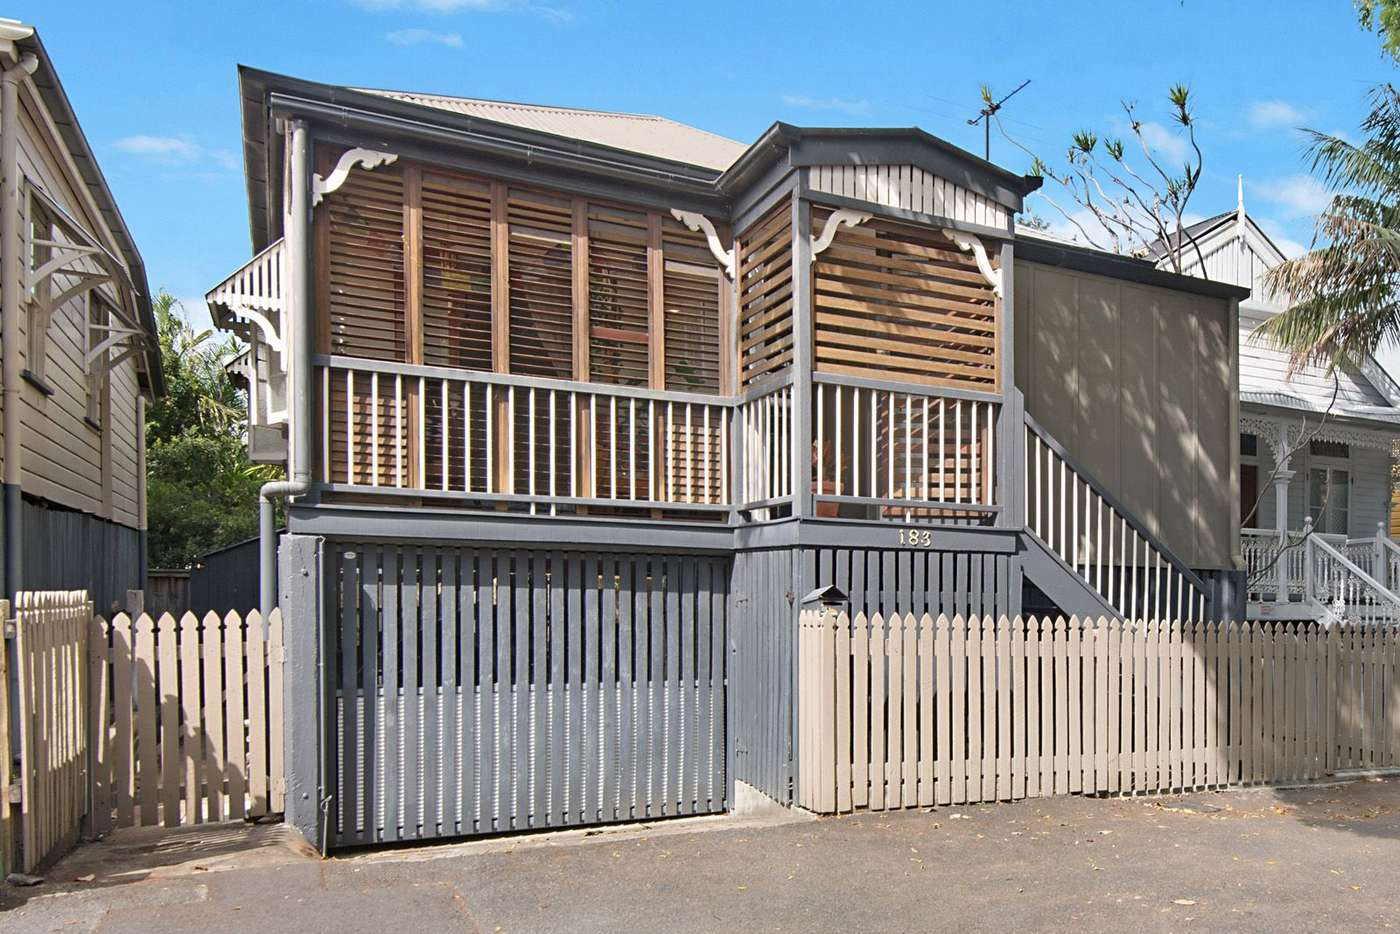 Main view of Homely house listing, 183 Hale Street, Petrie Terrace QLD 4000